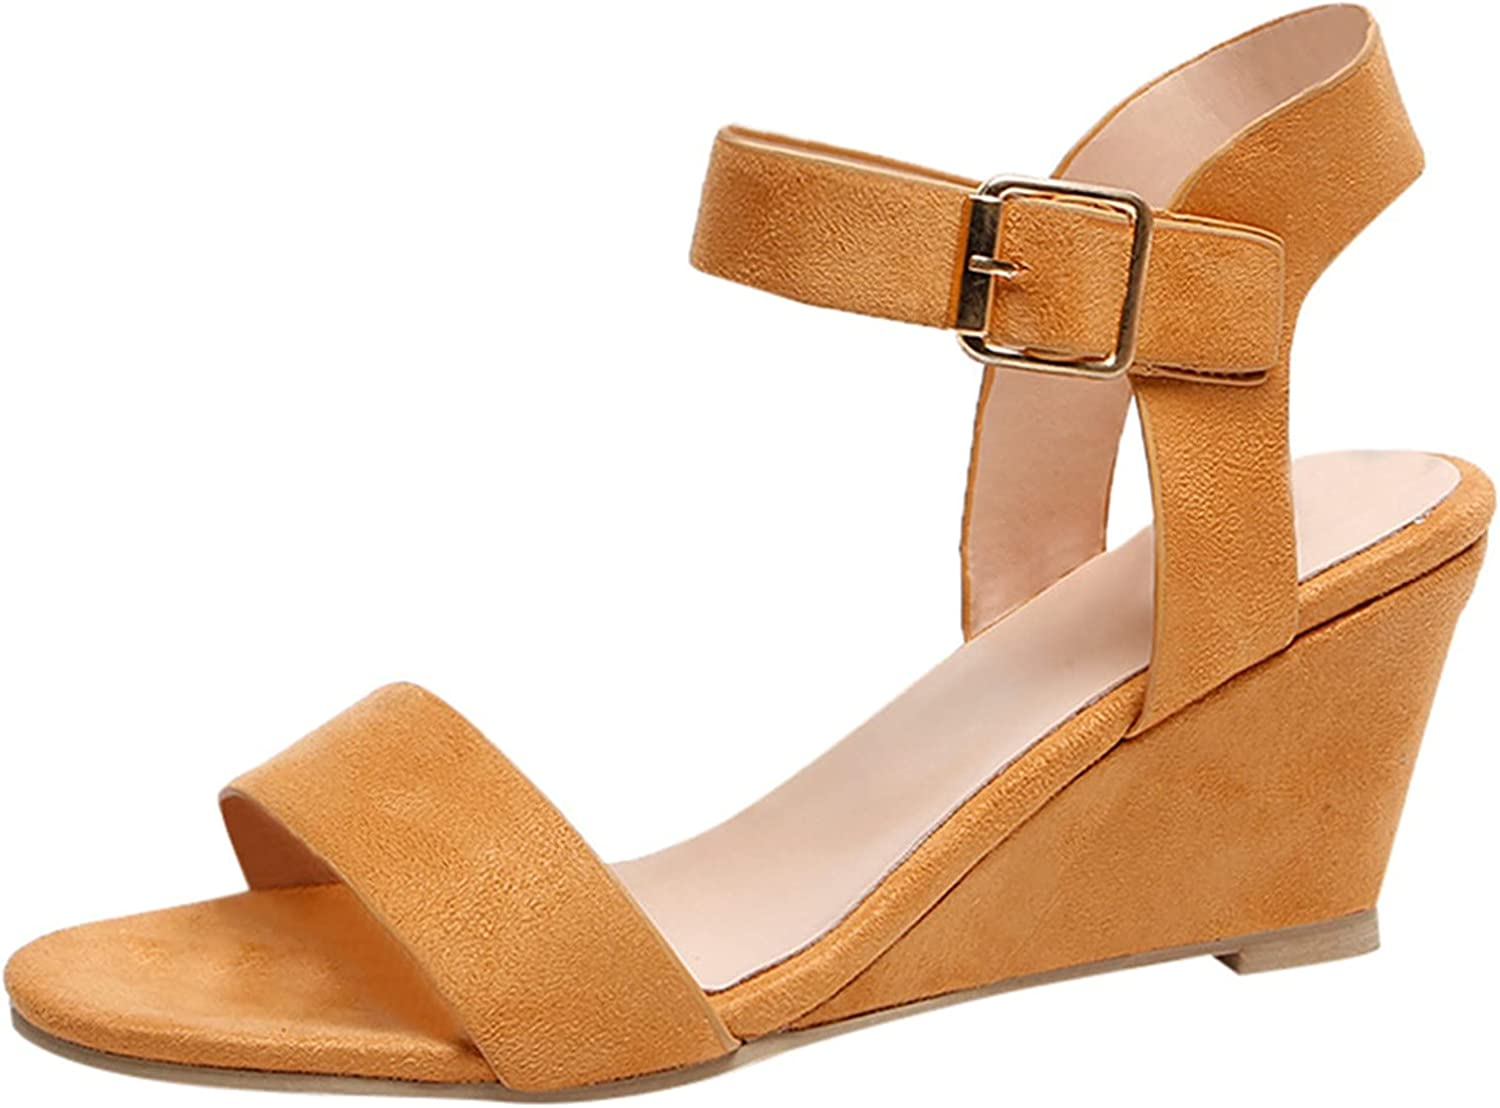 Adeliber Sandals For Women Casual Summer Women's Ladies Fashion